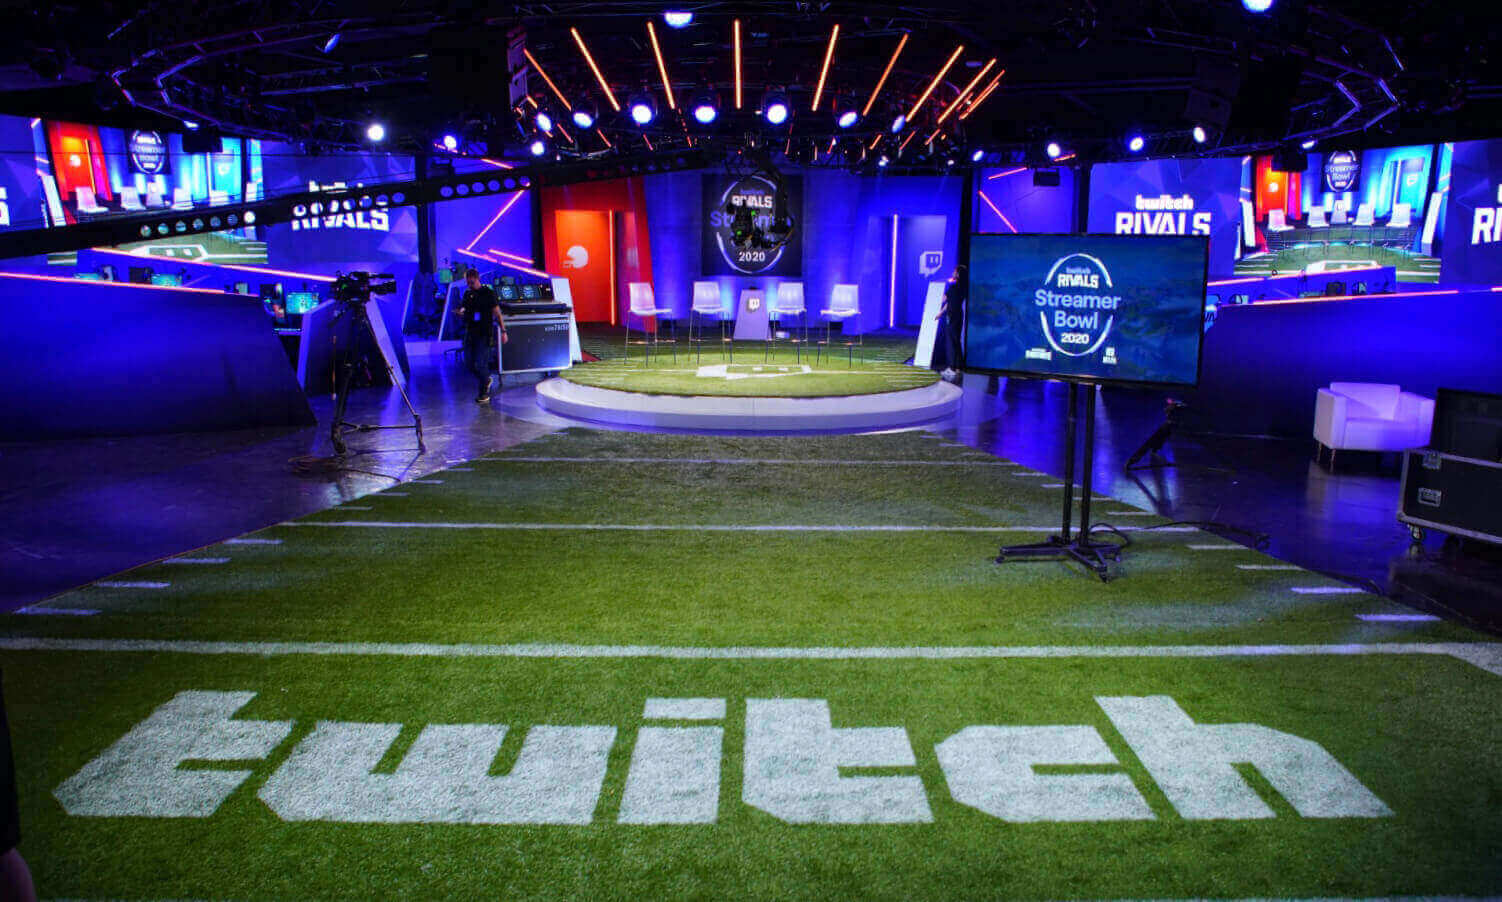 Twitch Rivals Streamer Bowl ft. Fortnite event confirmed for 2021